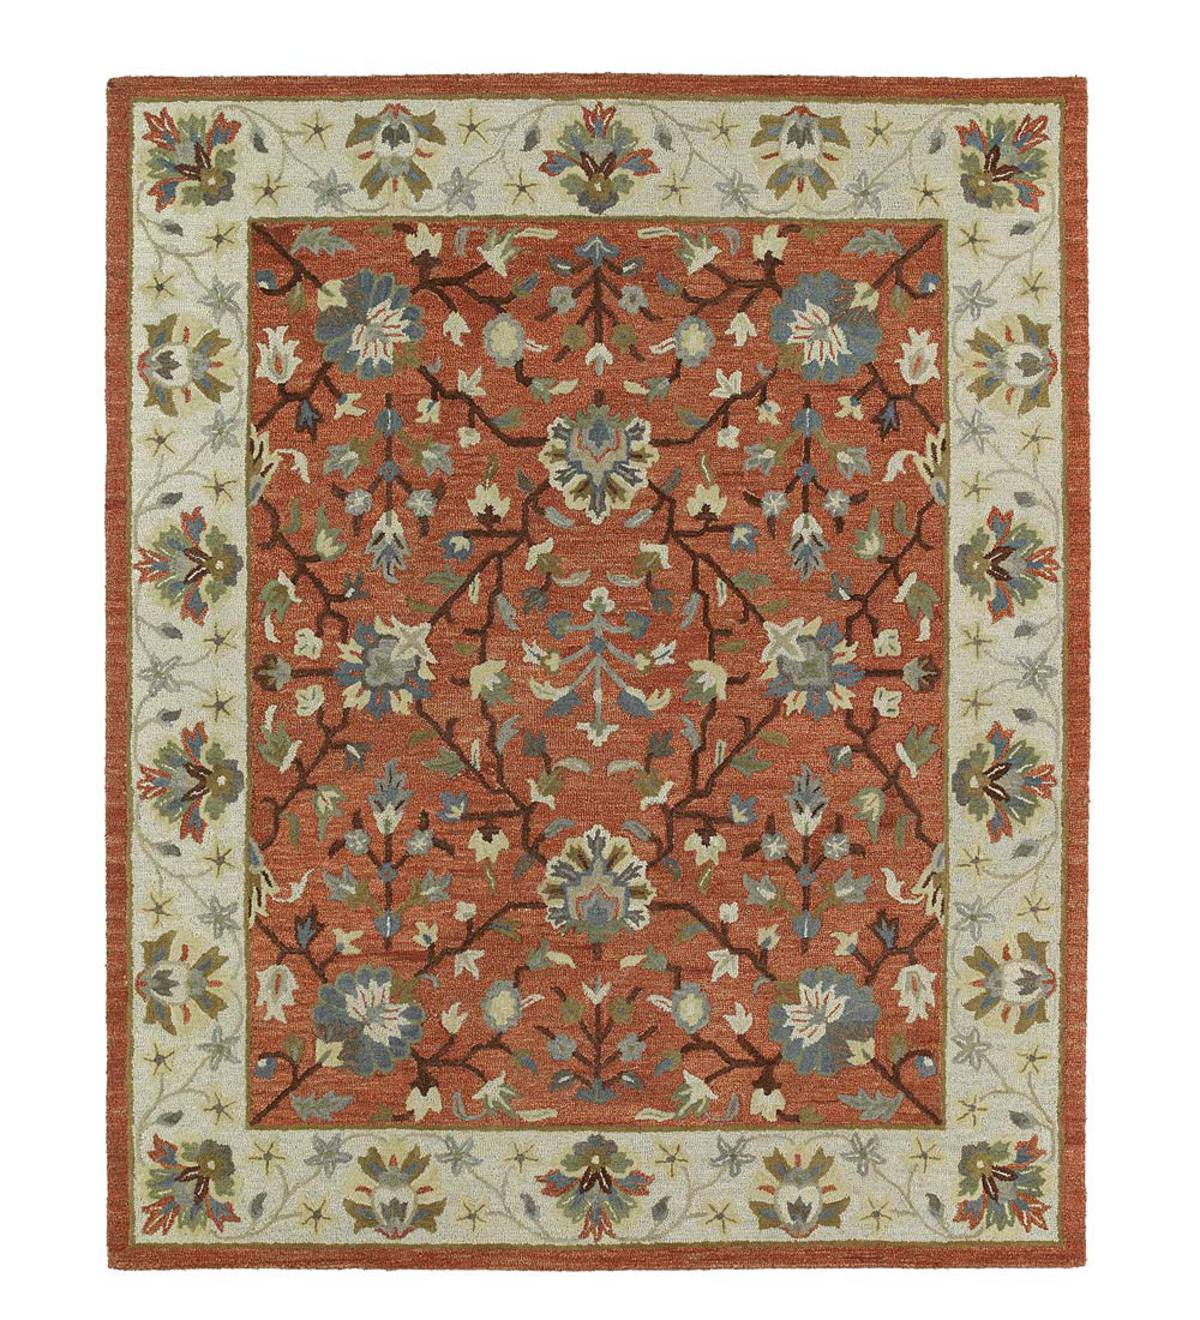 Baroque Glory Wool Rug, 2' x 3' - Brick